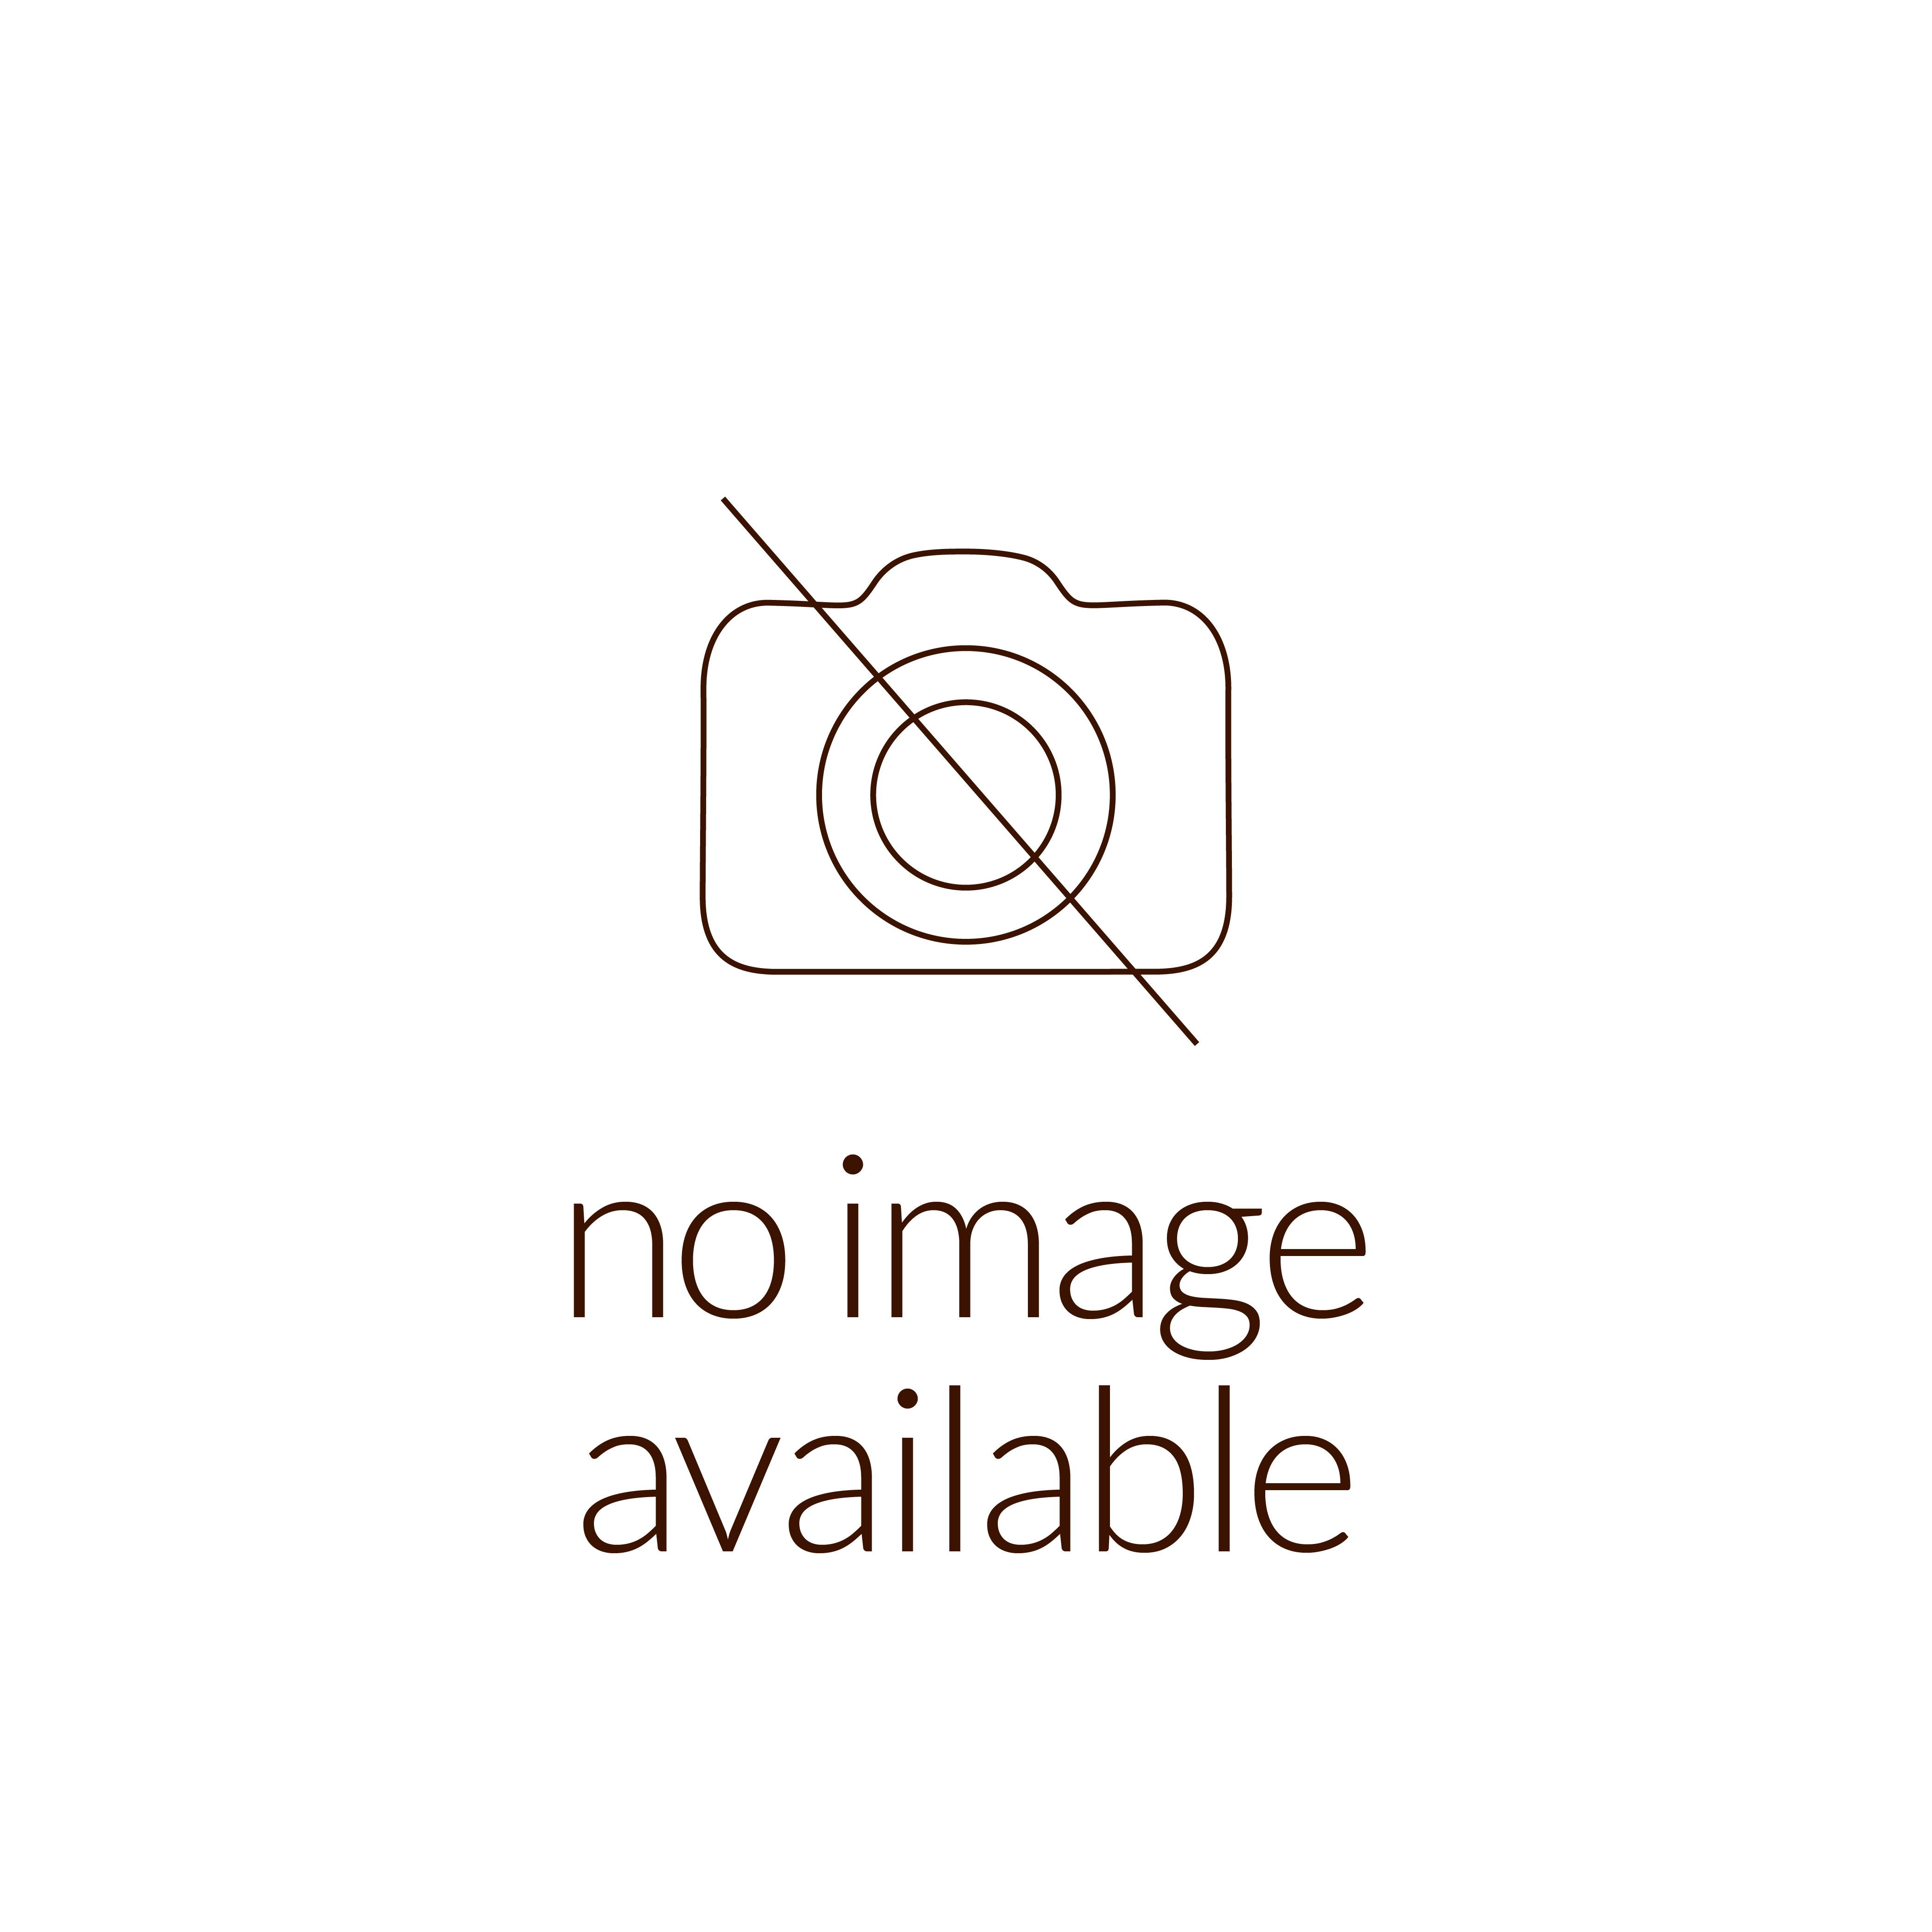 Olympic Games, Los Angeles - 30.0 mm, 13 g, Copper Nickel